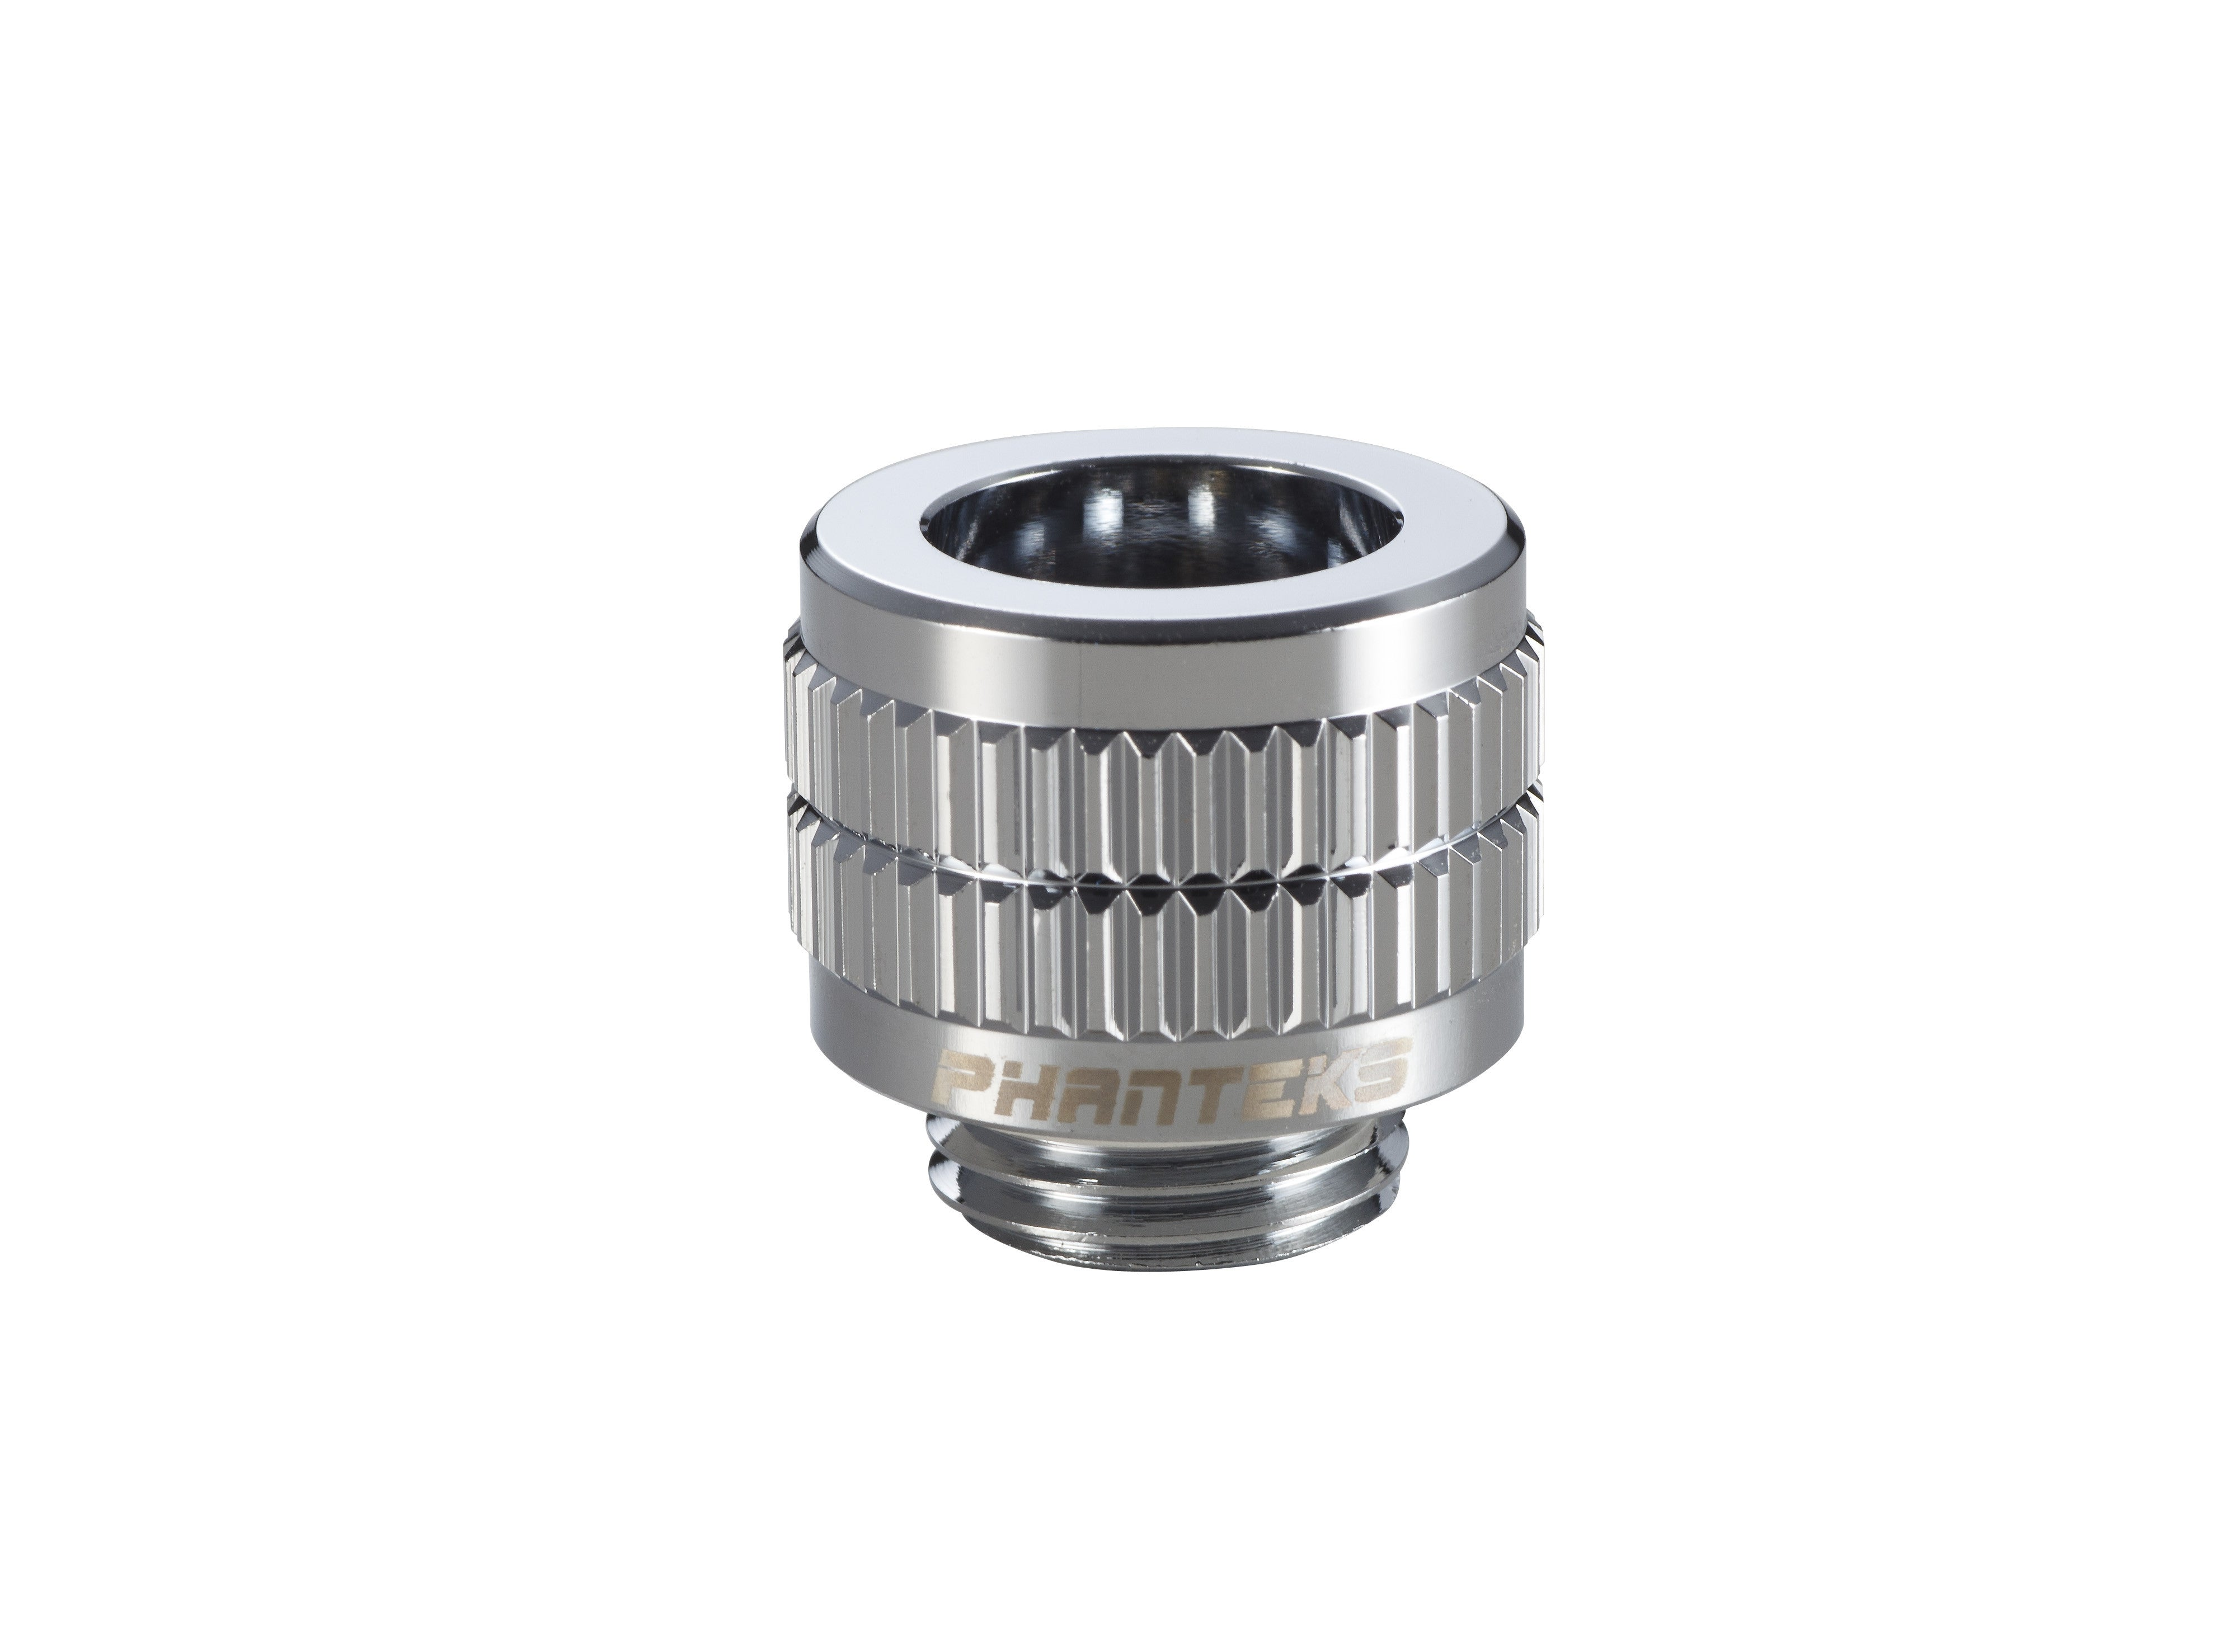 Phanteks Glacier 12mm Hard Tube Fitting G1/4